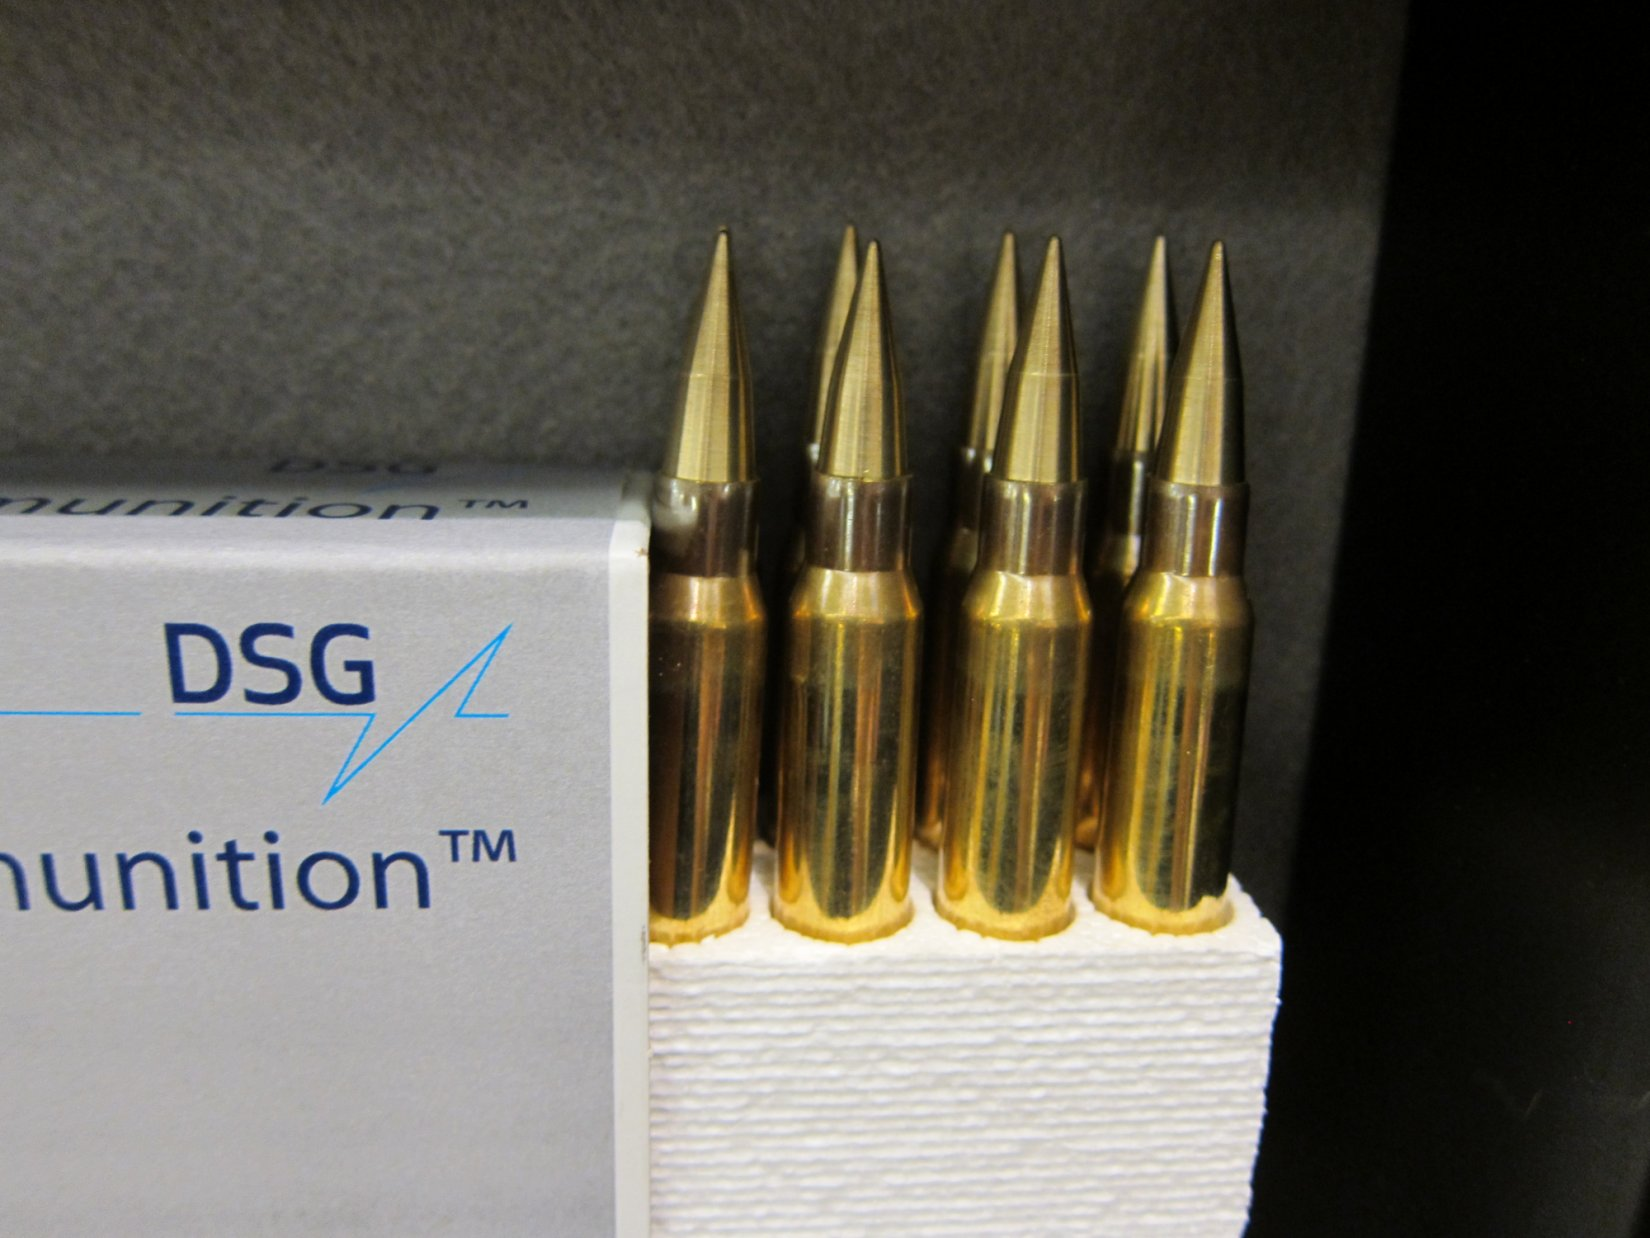 DSG Technology PNW Arms Super Sniper Ammunition SSA formerly Enhanced Performance Sniper EPR Super Sniper Tactical SST and Super Sniper Armor Piercing SSAP Rounds NDIA Joint Armaments 2012 DefenseReview.com DR 5 DSG Technology/PNW Arms Super Sniper Ammunition (SSA) Enhanced Range Rifle Ammo Being Made in the USA for Military Special Operations Forces (SOF) Long Range Interdiction/Sniping and Close Quarters Battle/Close Quarters Combat (CQB/CQC) Applications: Solid Copper Super Sniper Tactical (SST) Rounds/Bullets and Tungsten Tipped Super Sniper Armor Piercing/Armor Penatrating (SSAP) AP Rounds/Bullets in All Military NATO Calibers! (Video!)